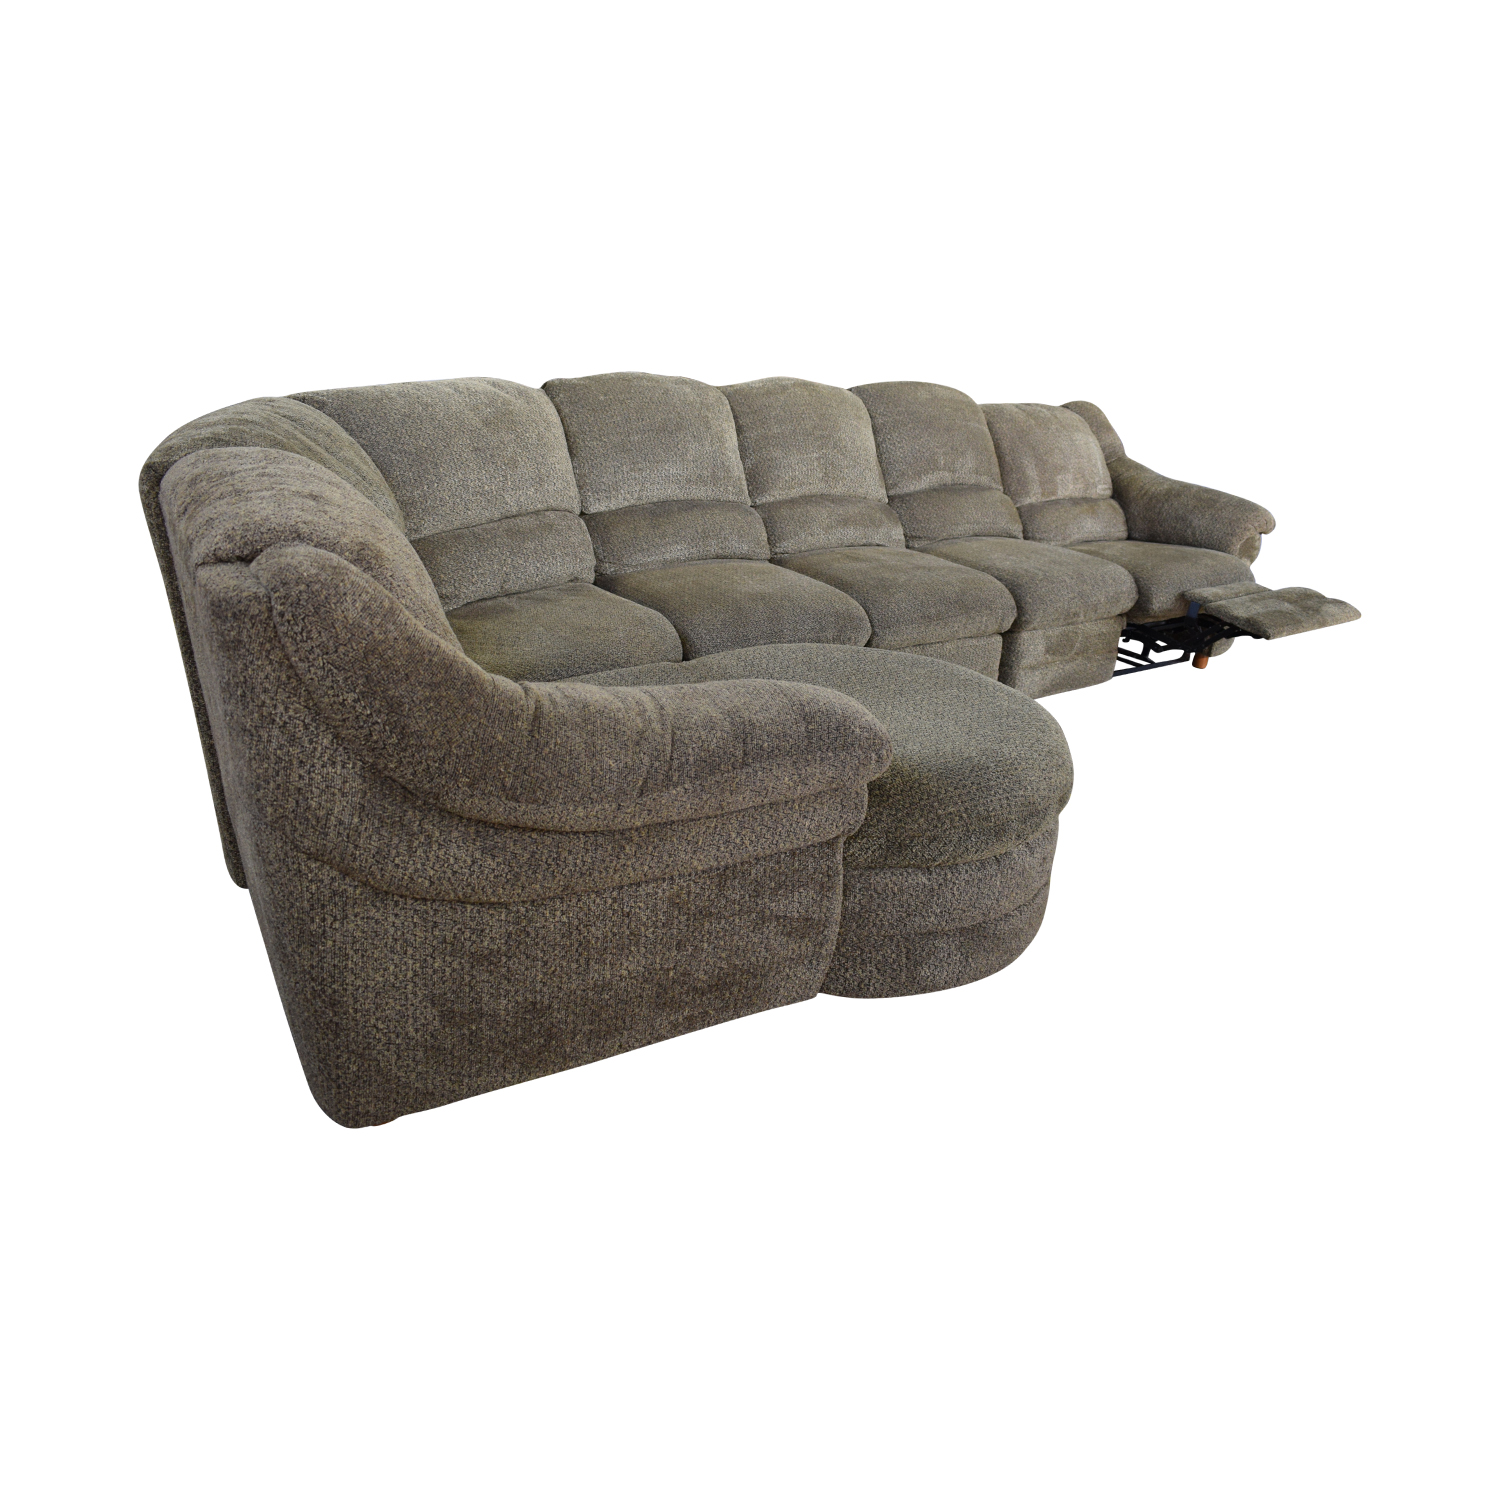 buy Lane Home Furnishings Lane Home Furnishings Sectional Sofa online